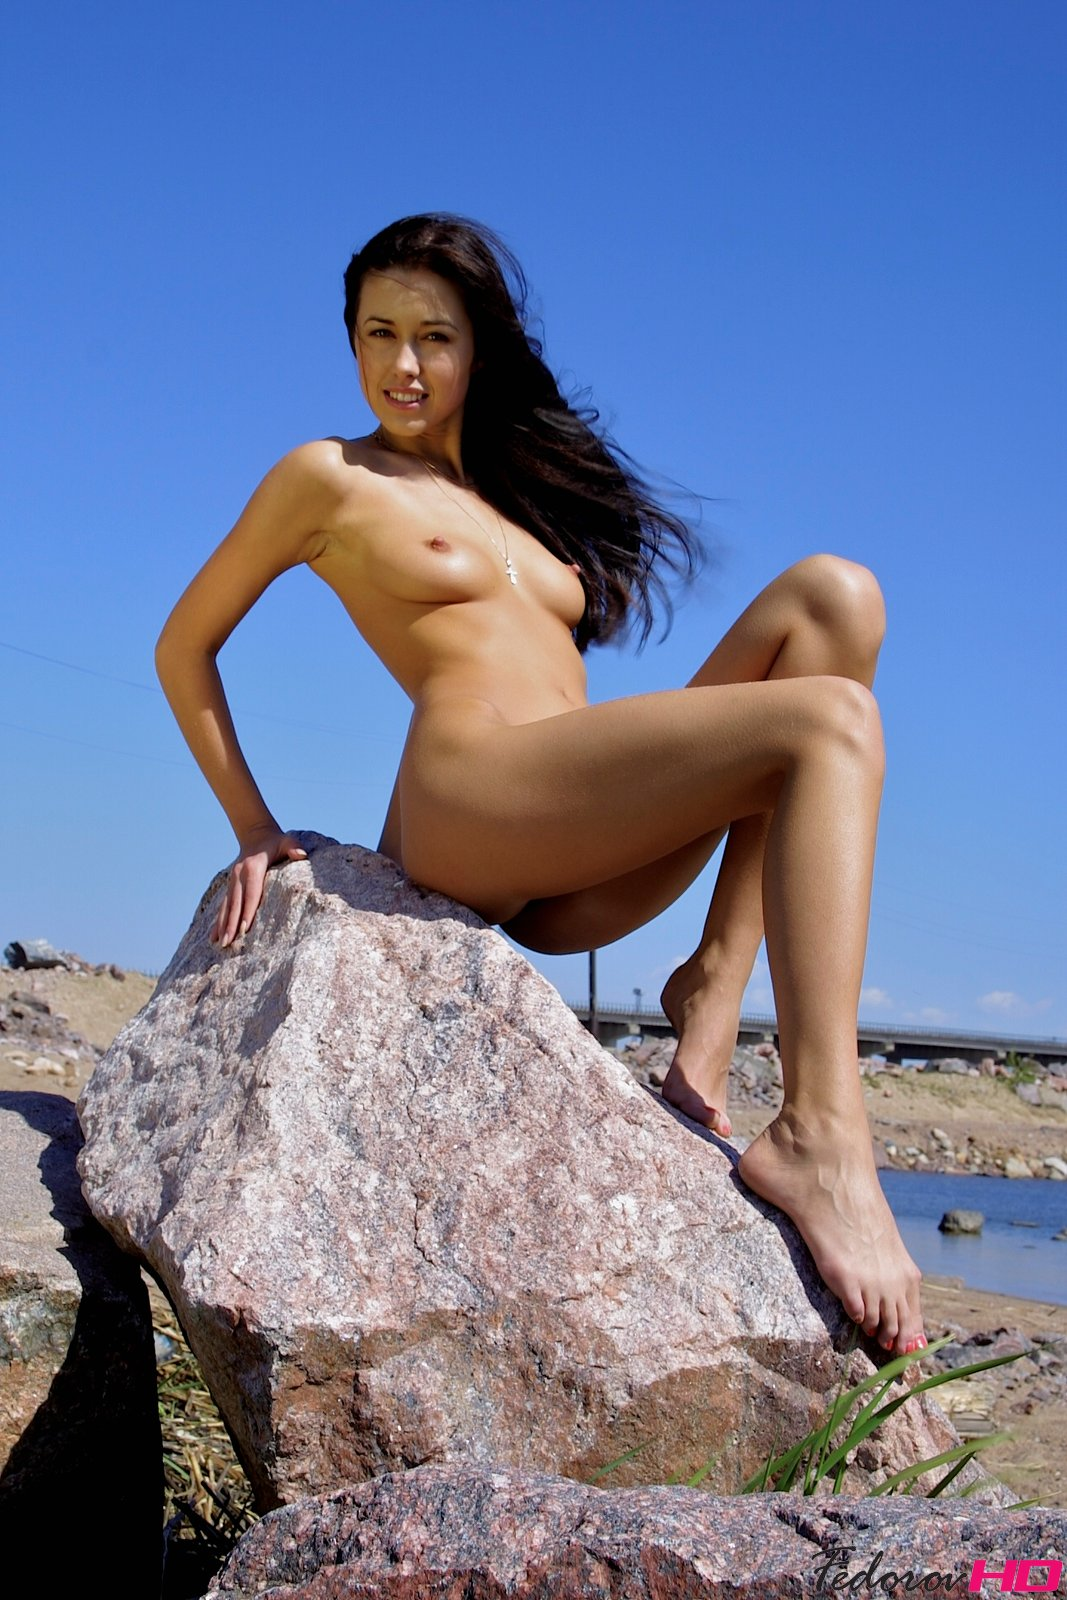 Bare skin against a blue sky shows the saucy exhibitionist side to this brunette posing nude